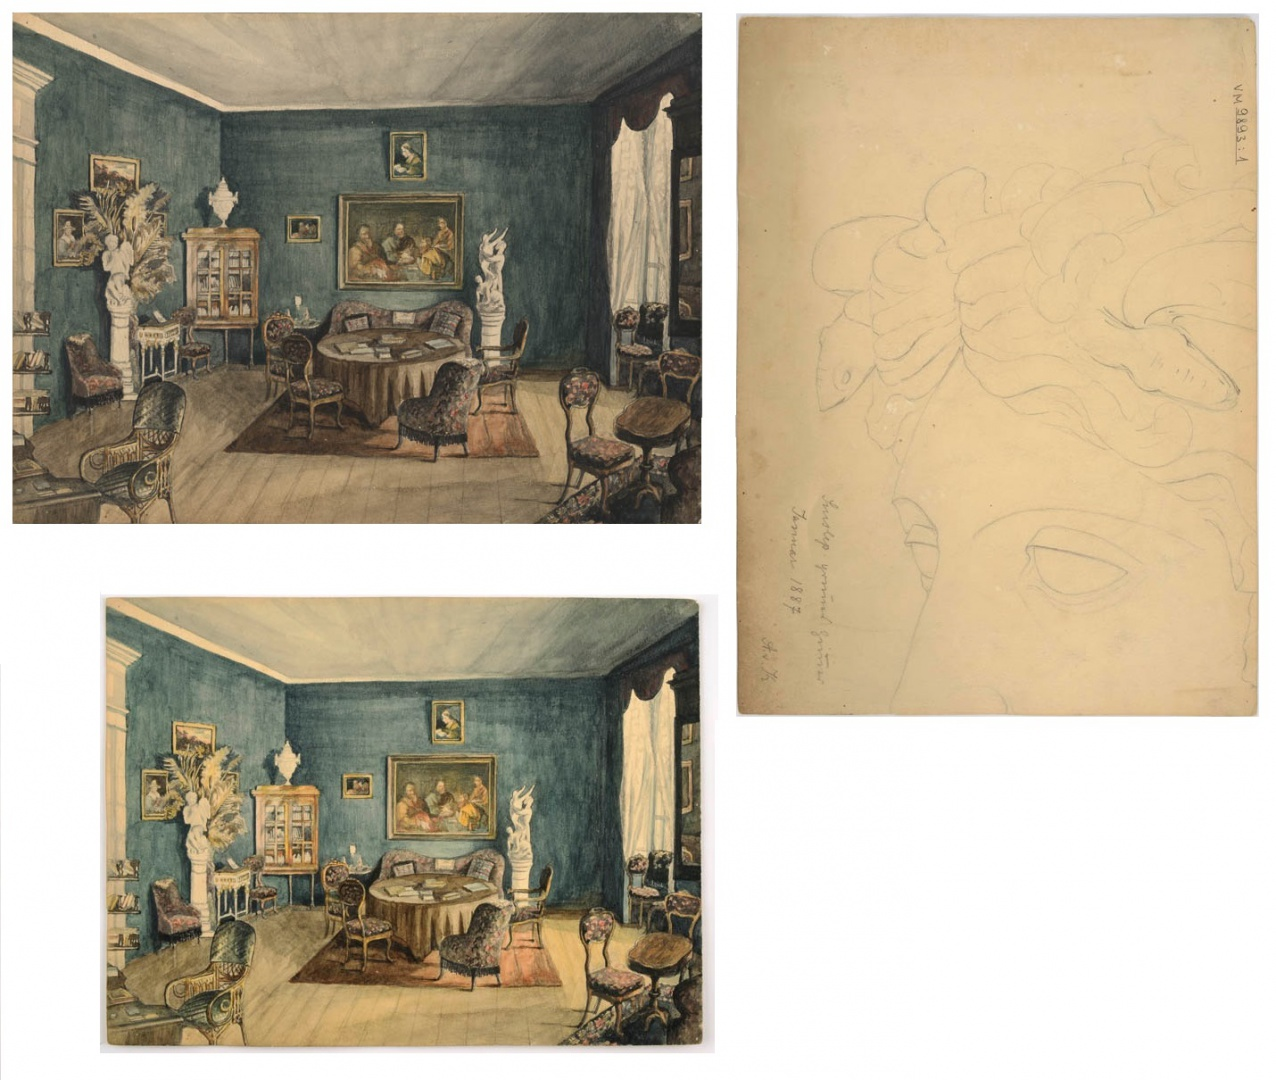 ill 29. Above the watercolour before conservation, below after conservation. On the right – a sketch ofMedusa's head drawn on the back of the watercolour. Photo – Kanut.